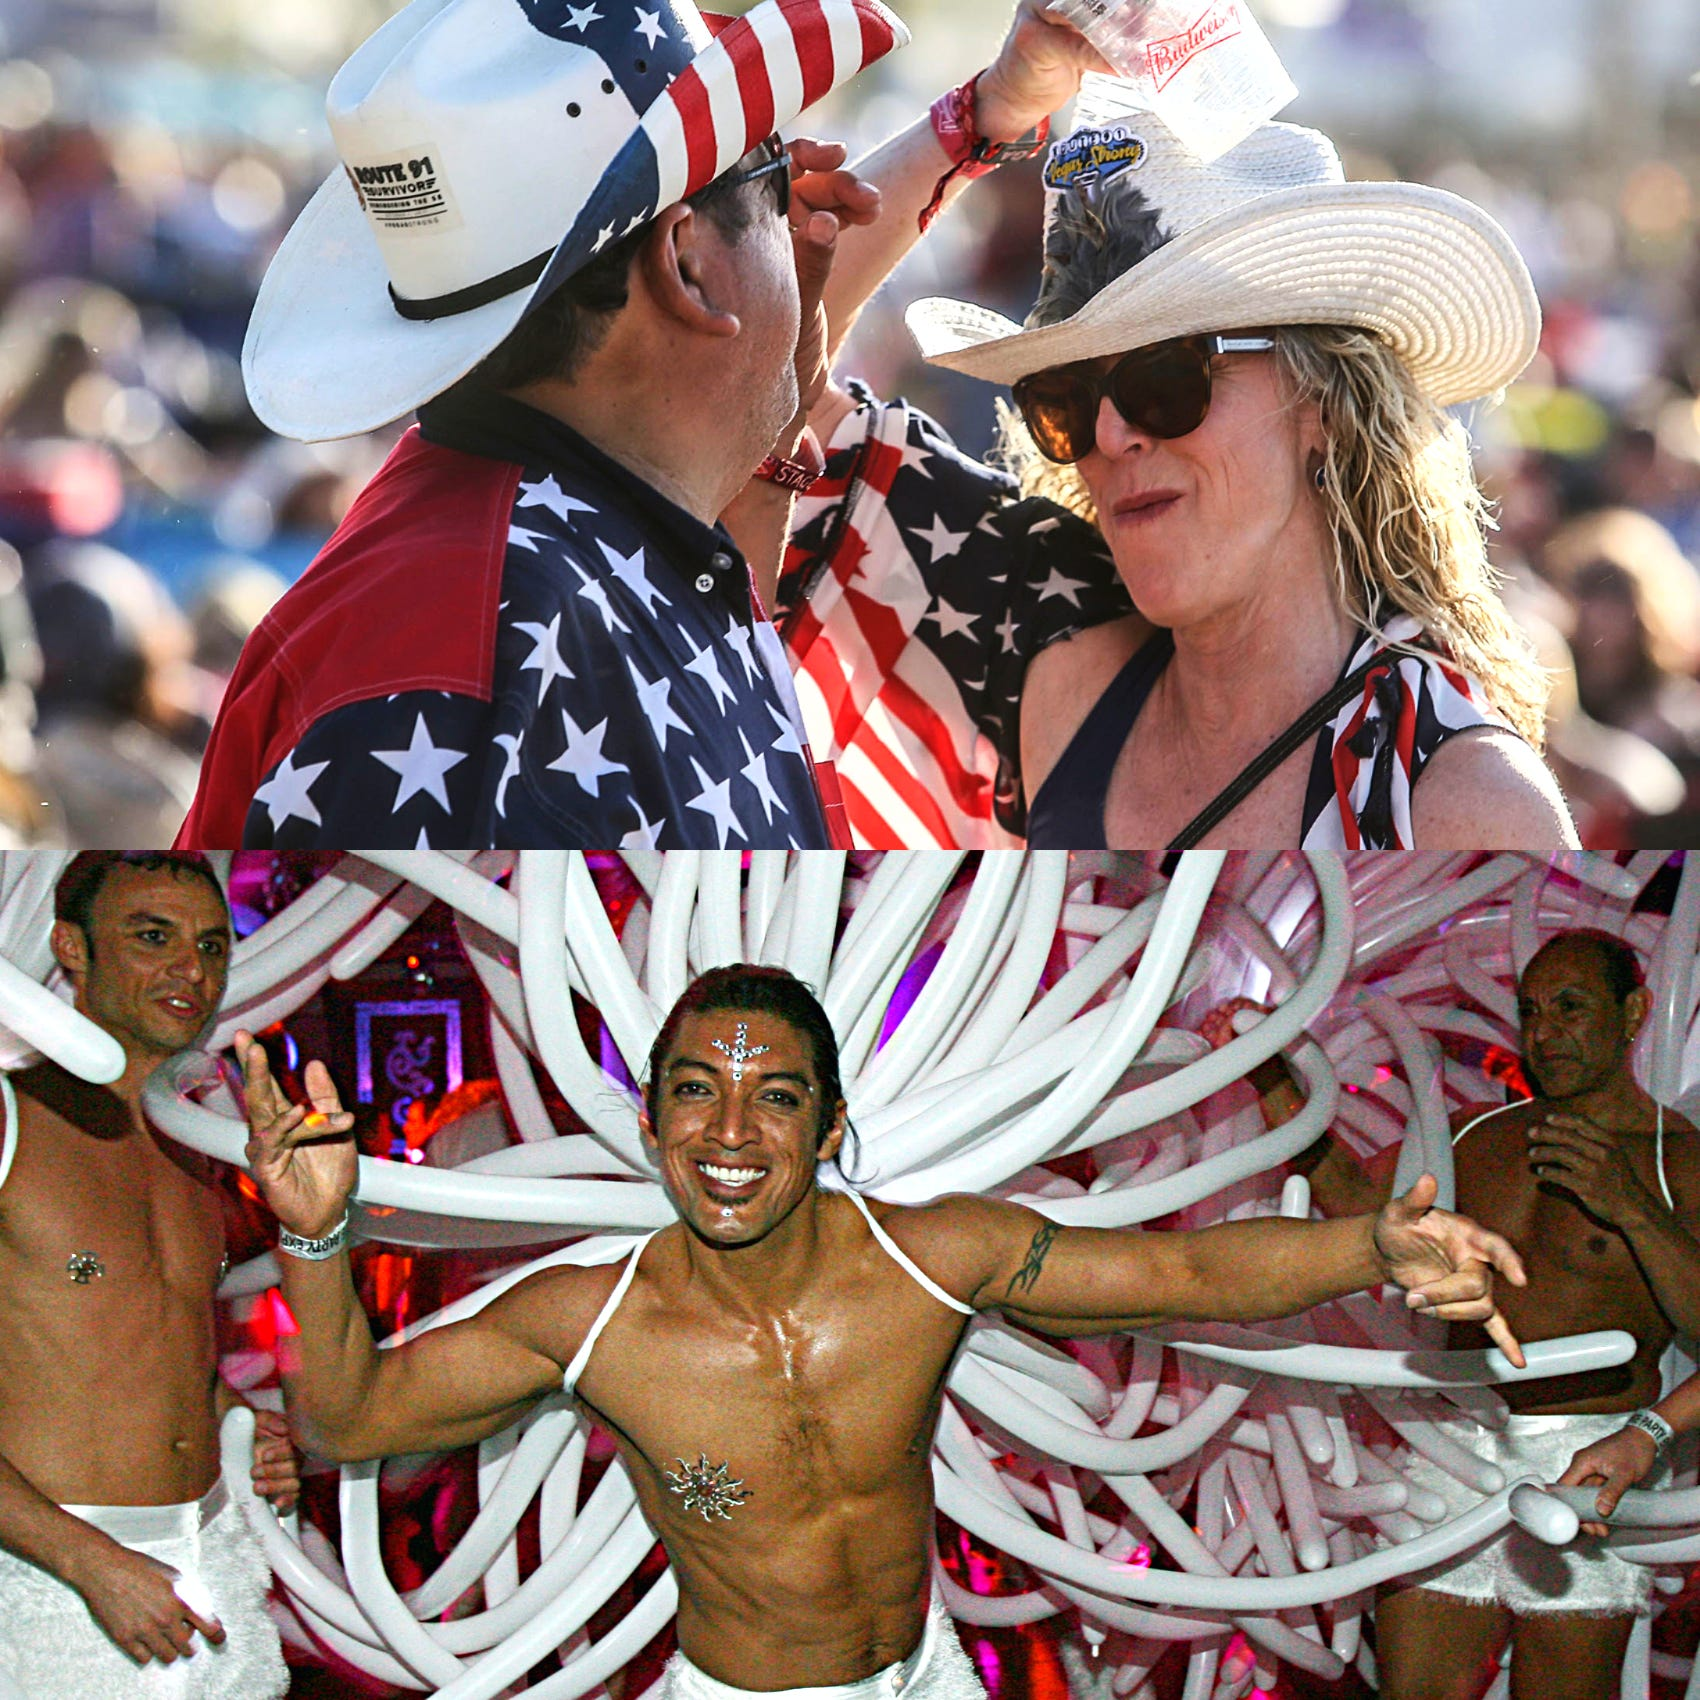 Stagecoach, White Party battle for top weekend event in the California desert